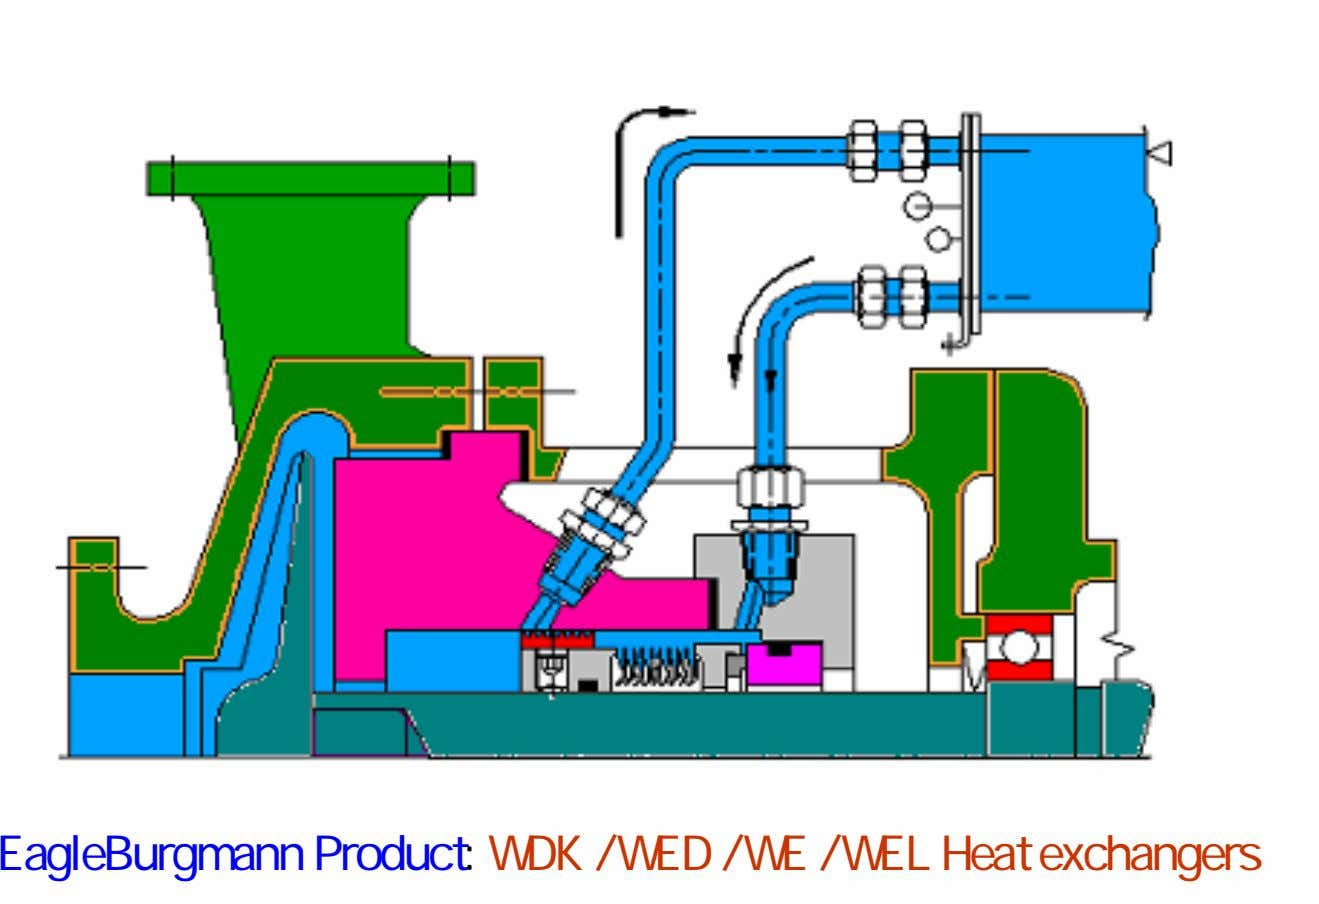 EagleBurgmann Product: WDK / WED / WE / WEL Heat exchangers